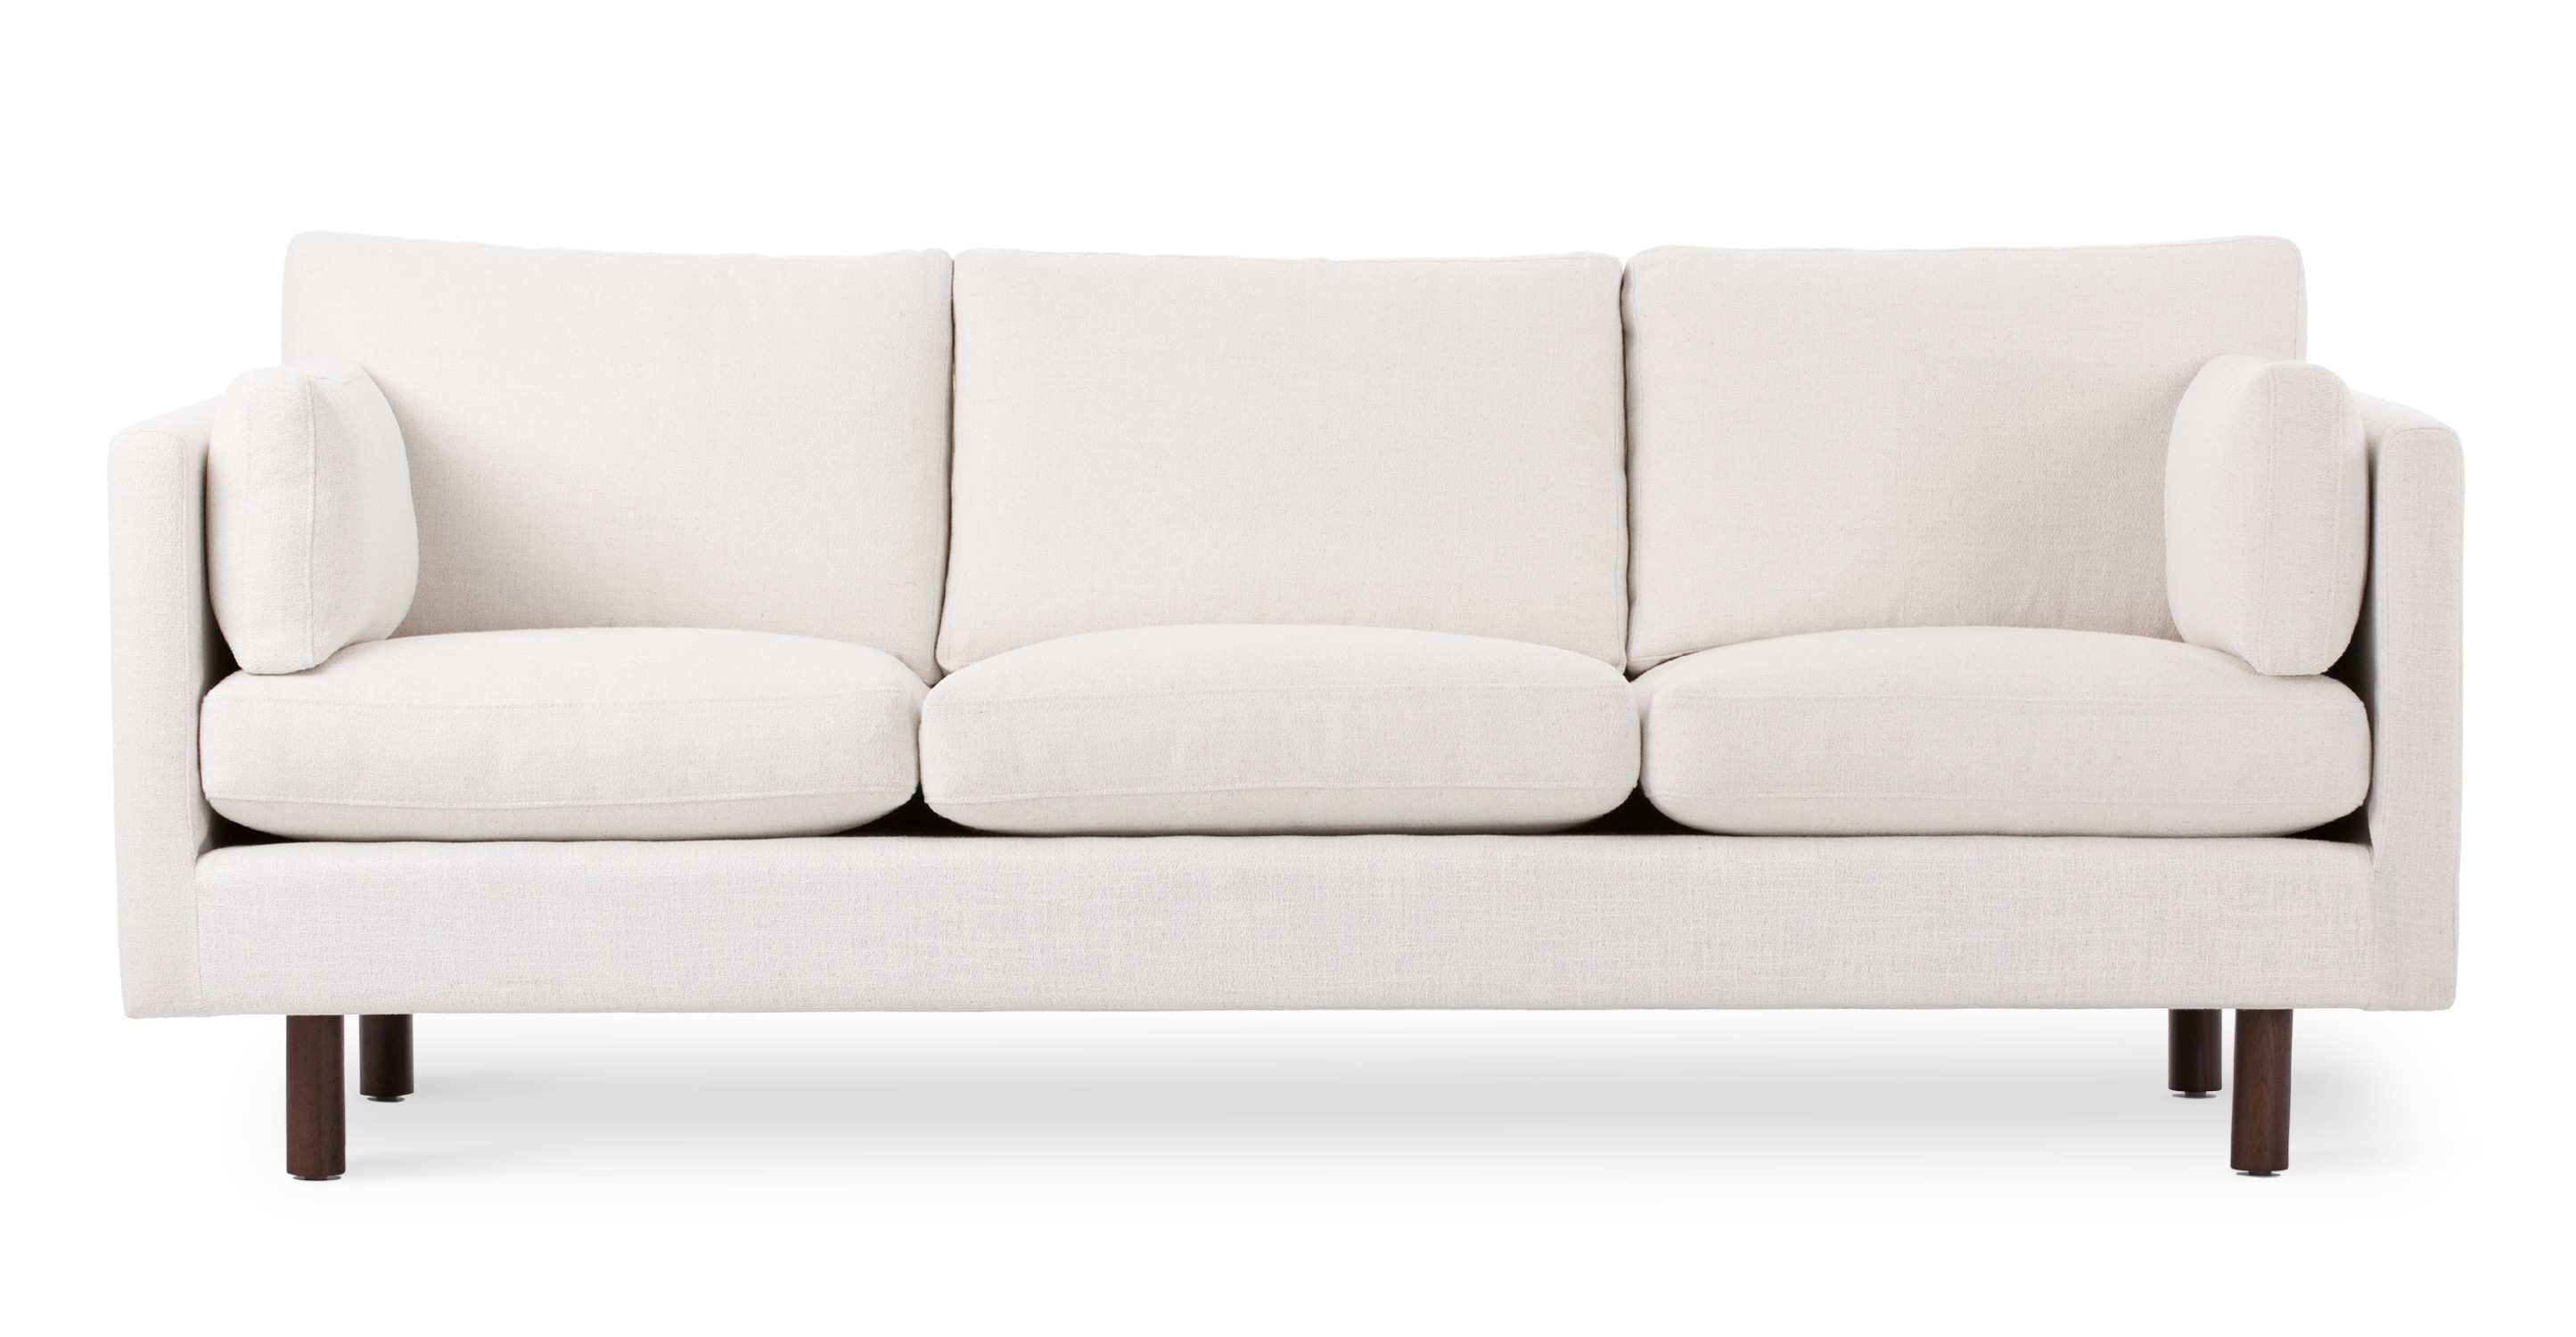 Nova creamy white sofa sofas article modern mid for Furniture sofas and couches